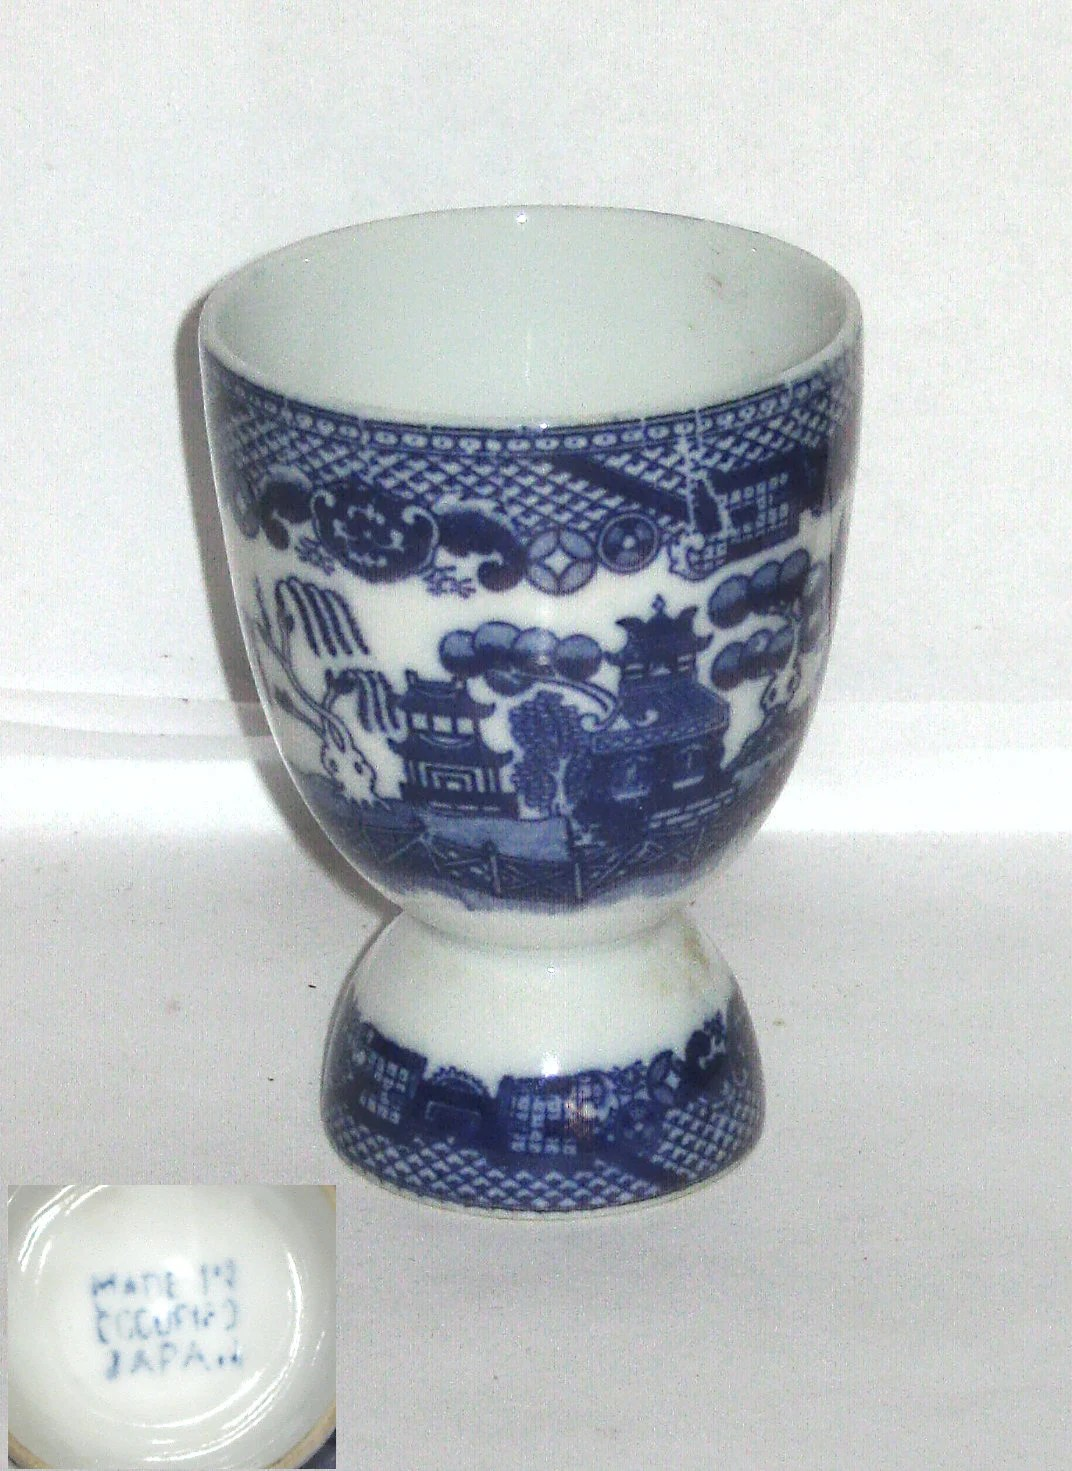 Arte Murano Icet Elephant Occupied Japan Small Serving Bowl Or Tea Cup Blue White Delft Porcelain